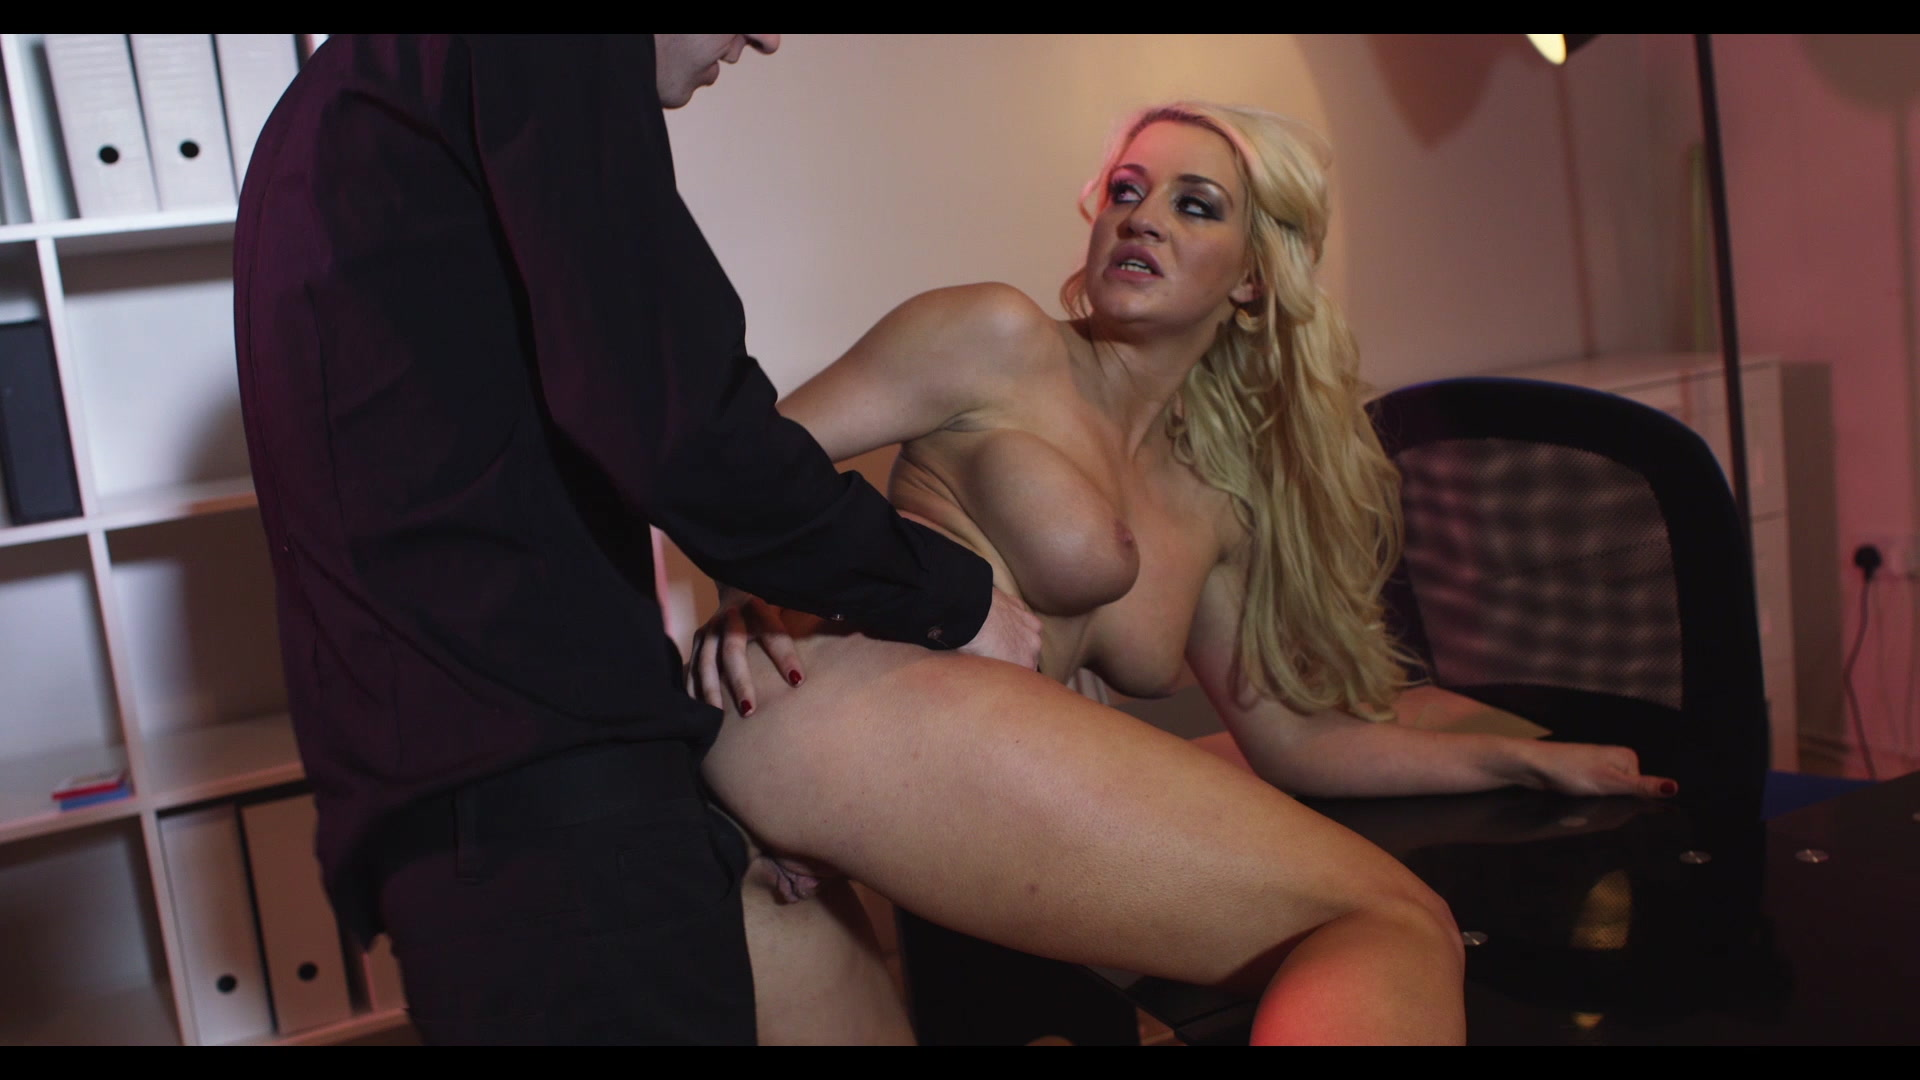 Scene with Sienna Day - image 7 out of 20